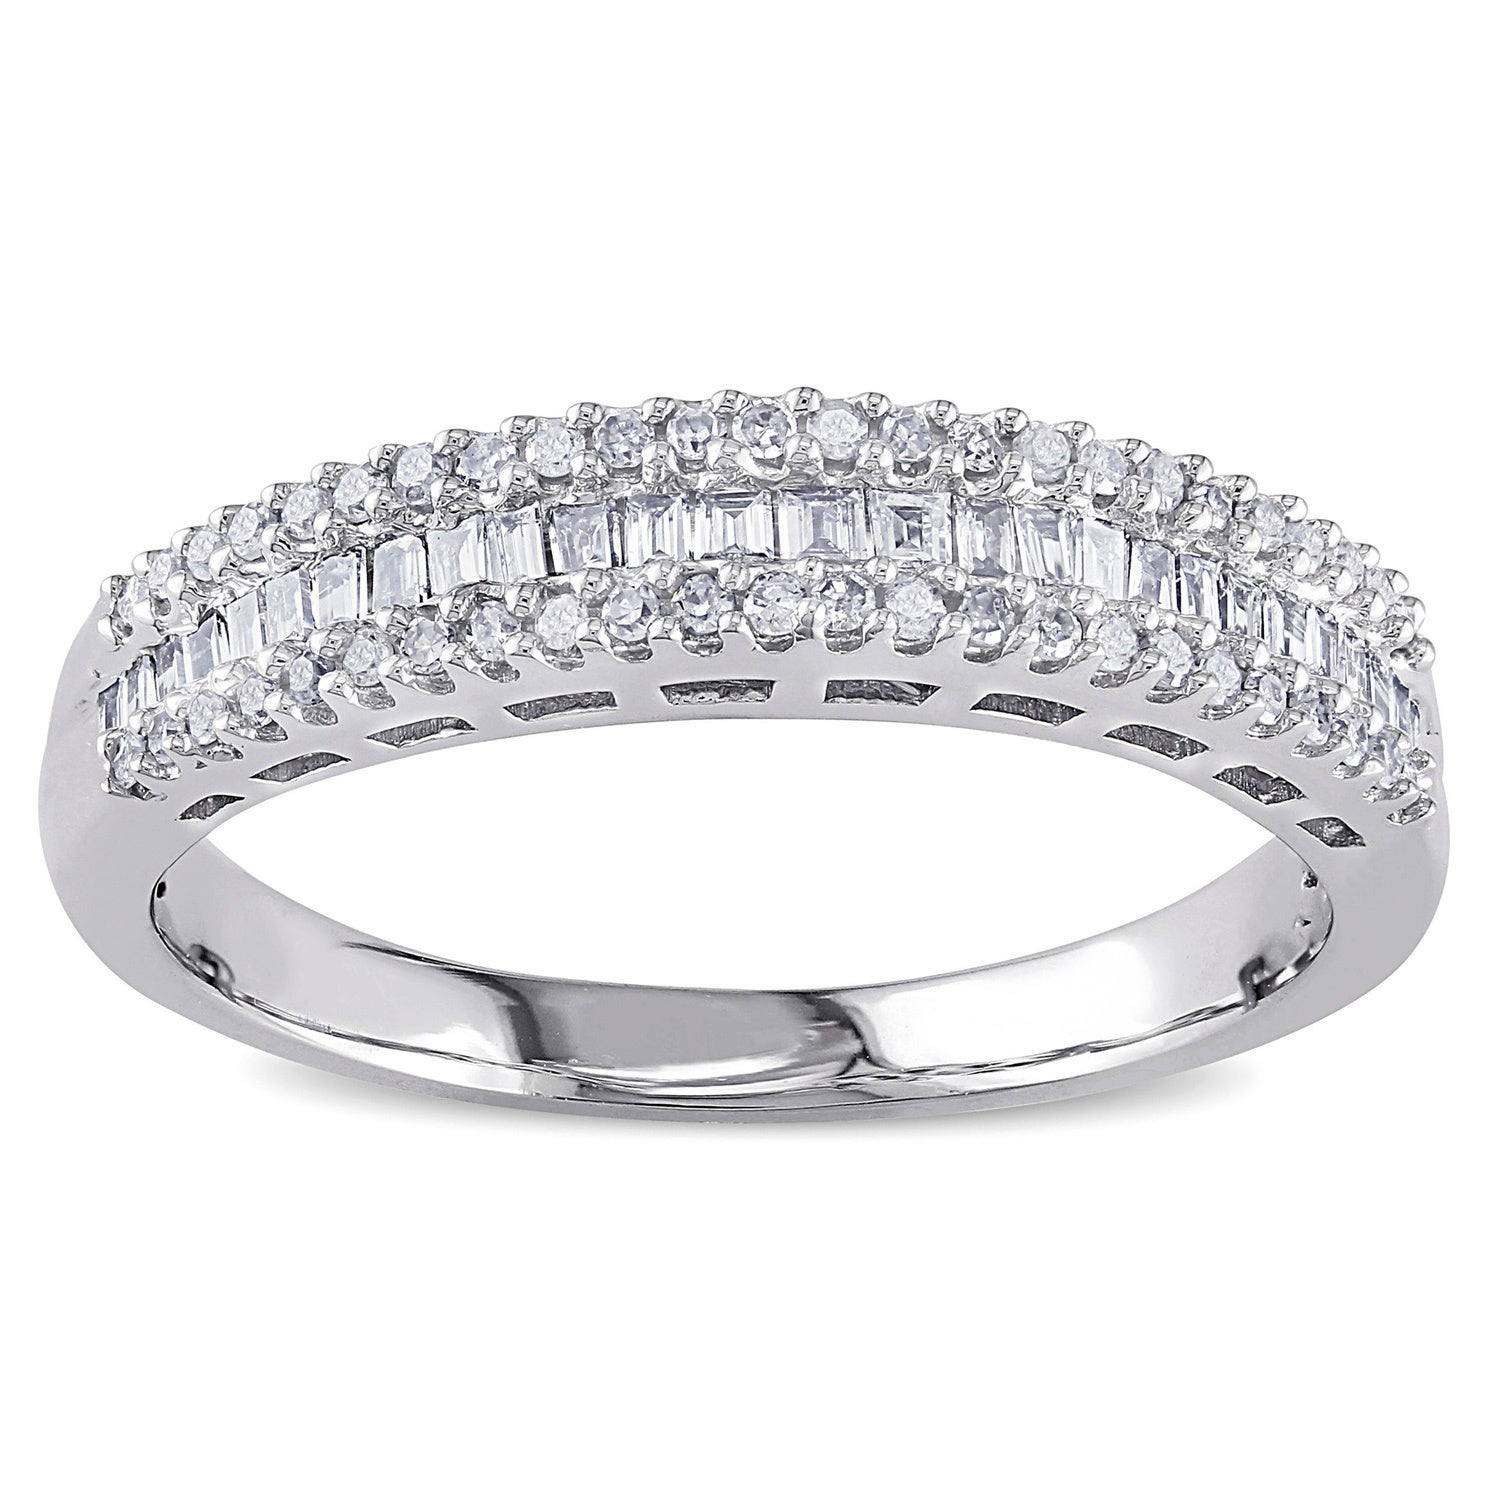 Miadora 14k White Gold 1/3ct Tdw Baguette Diamond Anniversary Band With Most Recent Round And Baguette Diamond Anniversary Bands In White Gold (View 12 of 25)